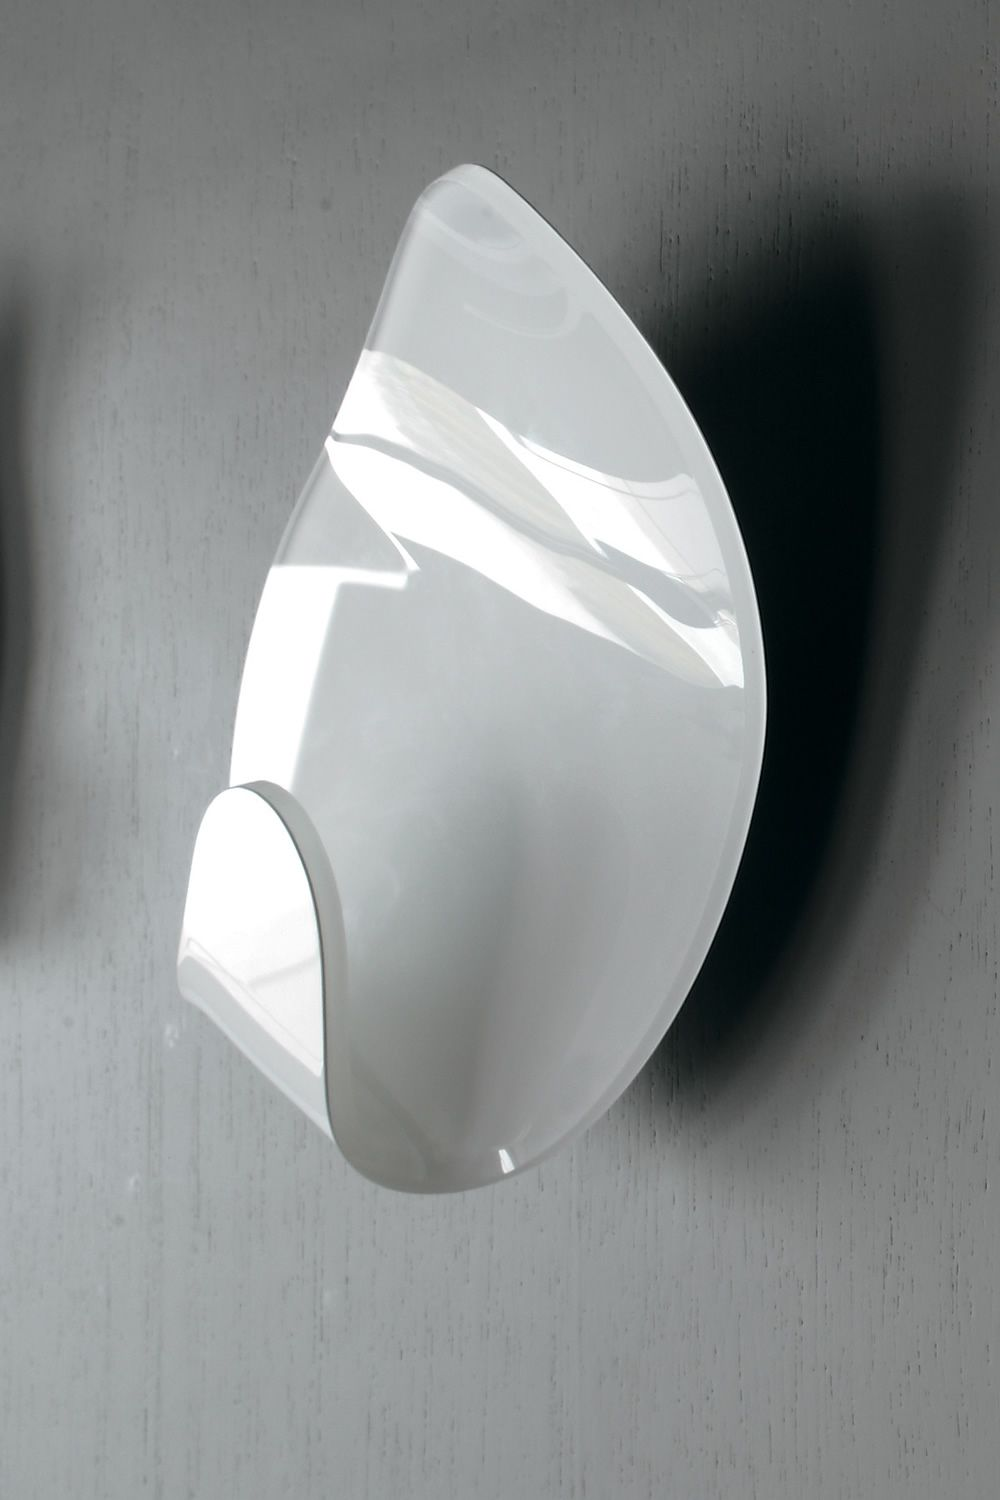 Set of 2 wall coat hook made of methacrylate, glossy white colour